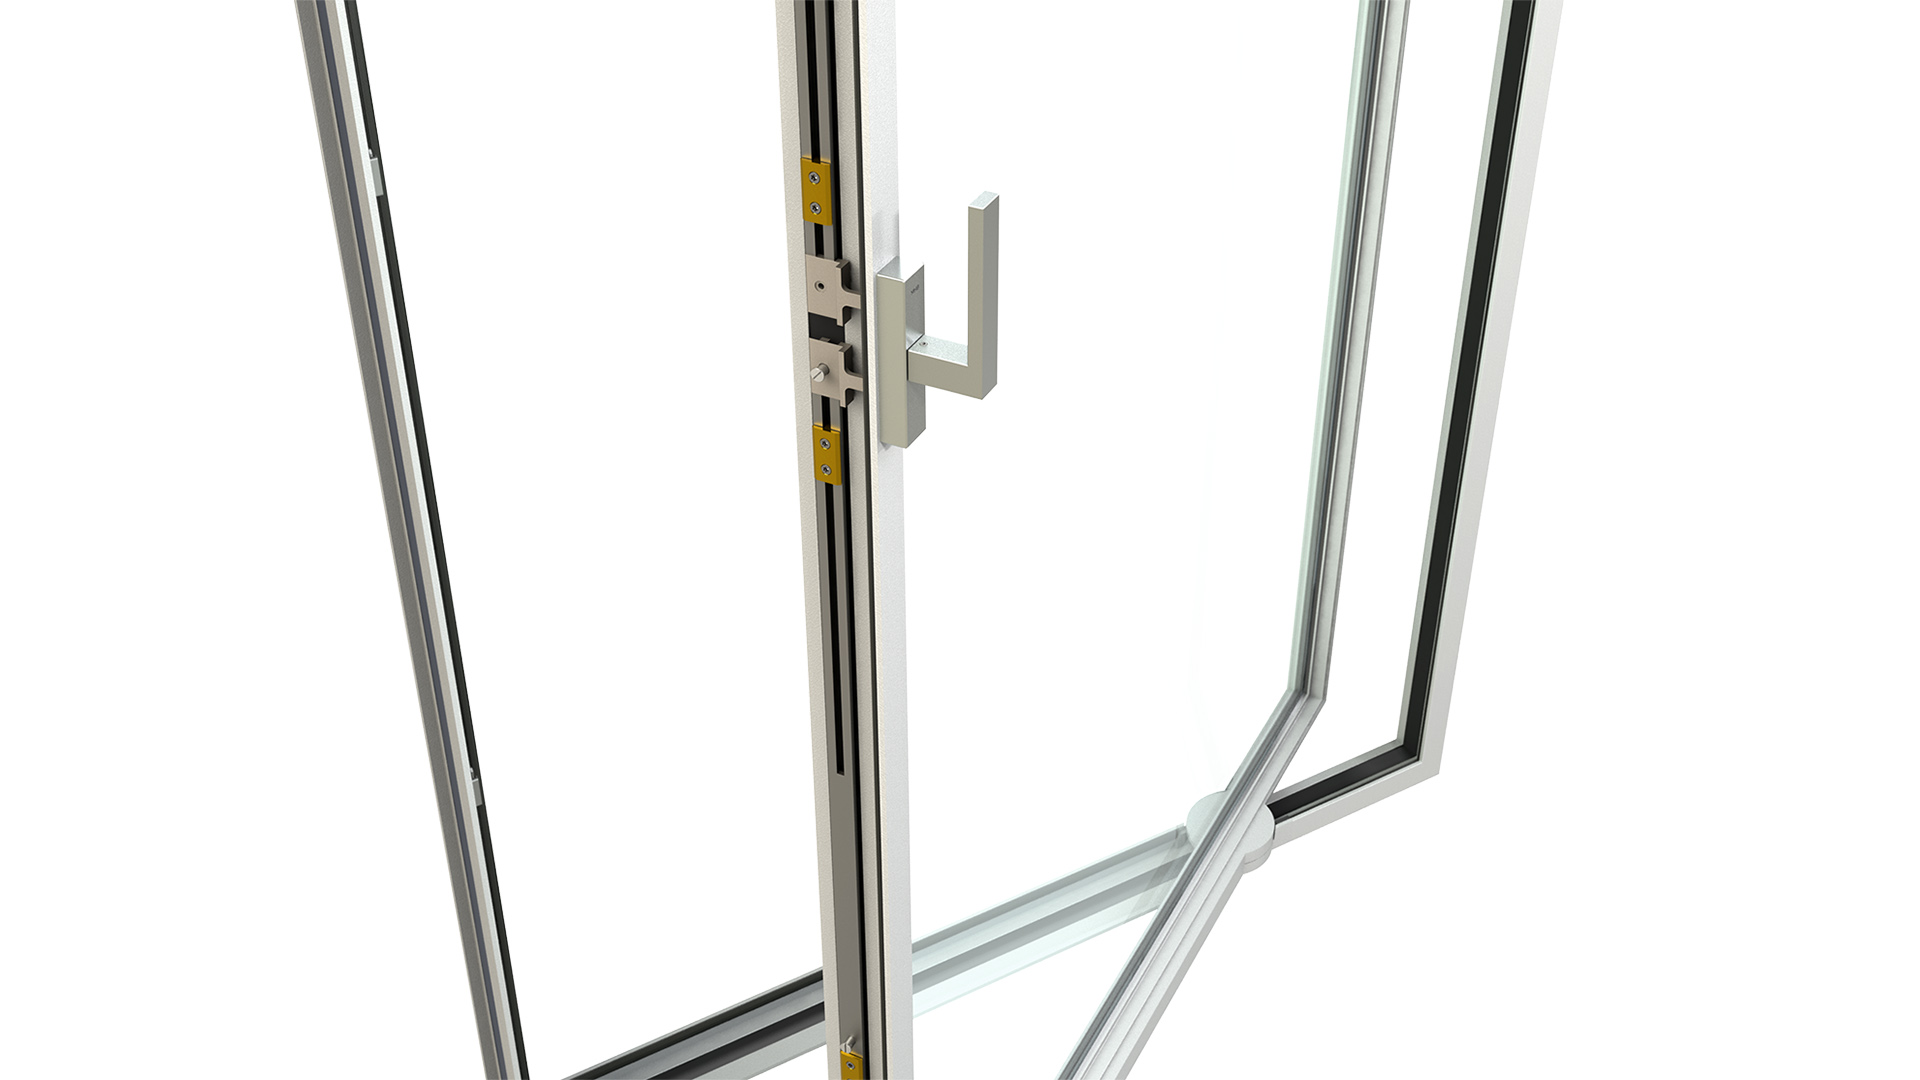 3d rendering detail of MHB steel pivot door